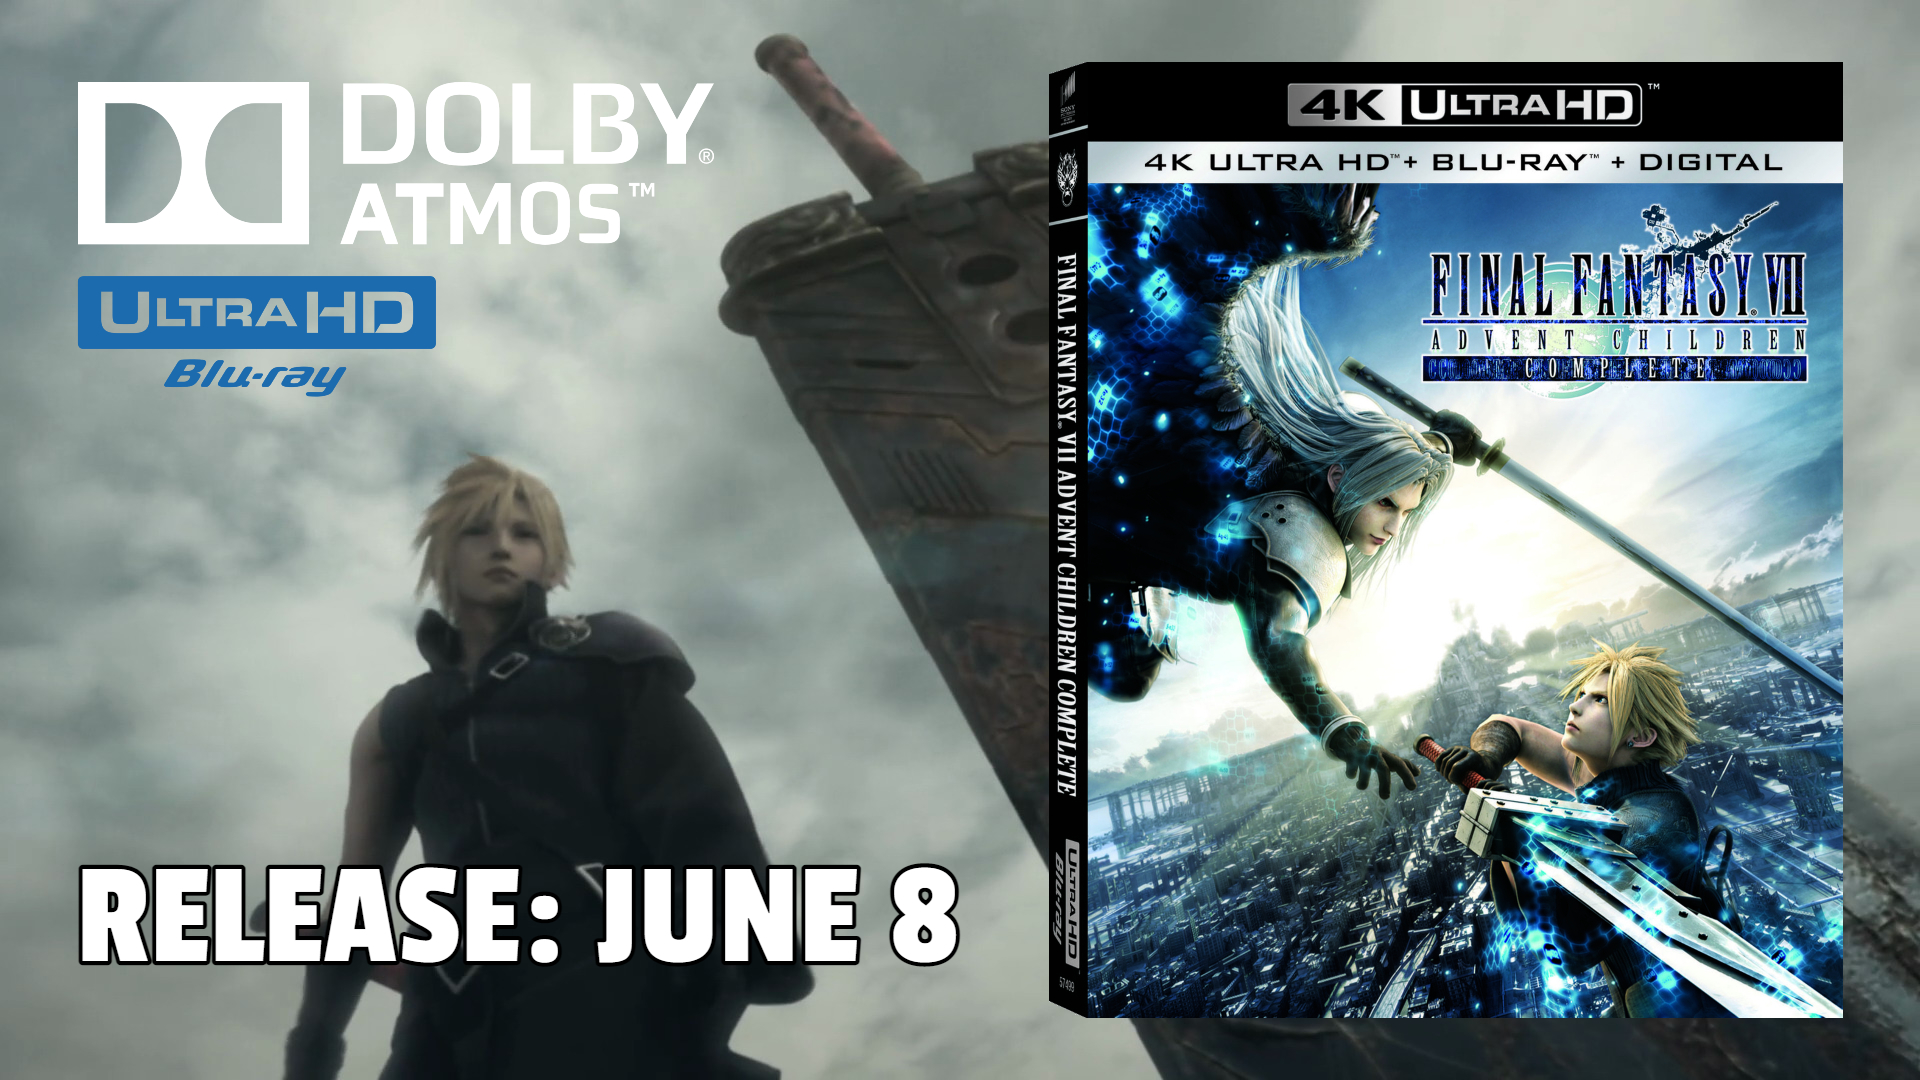 Final Fantasy VII: Advent Children Complete Remastered on 4K - Available June 8 (Sony Pictures)